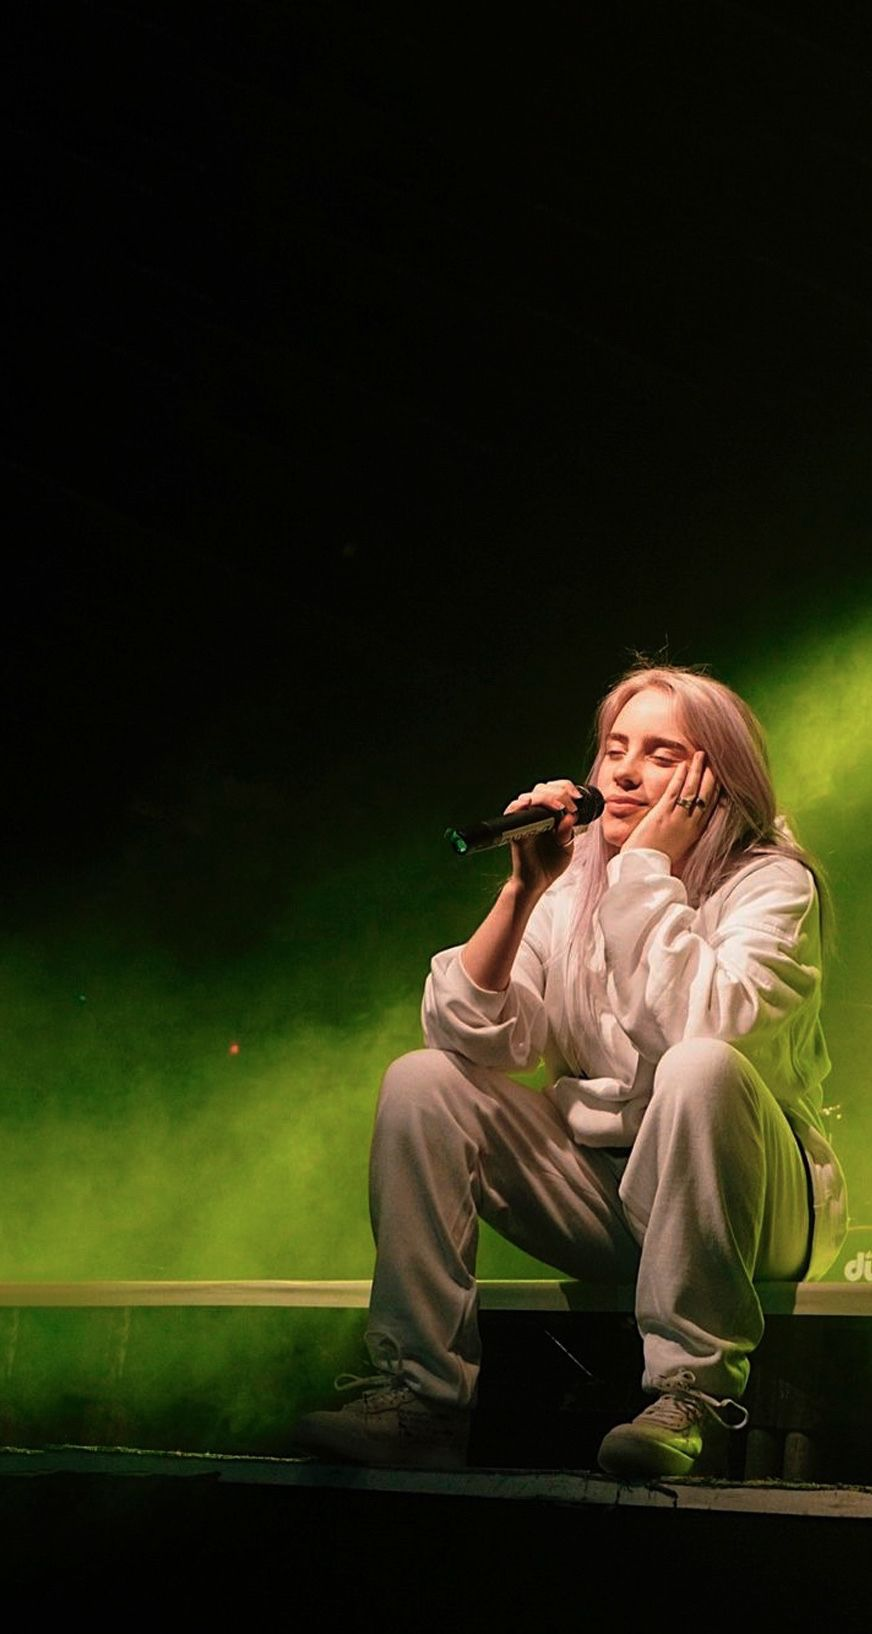 Billie Eilish Lockscreen Billie Eilish Billie Celebrities